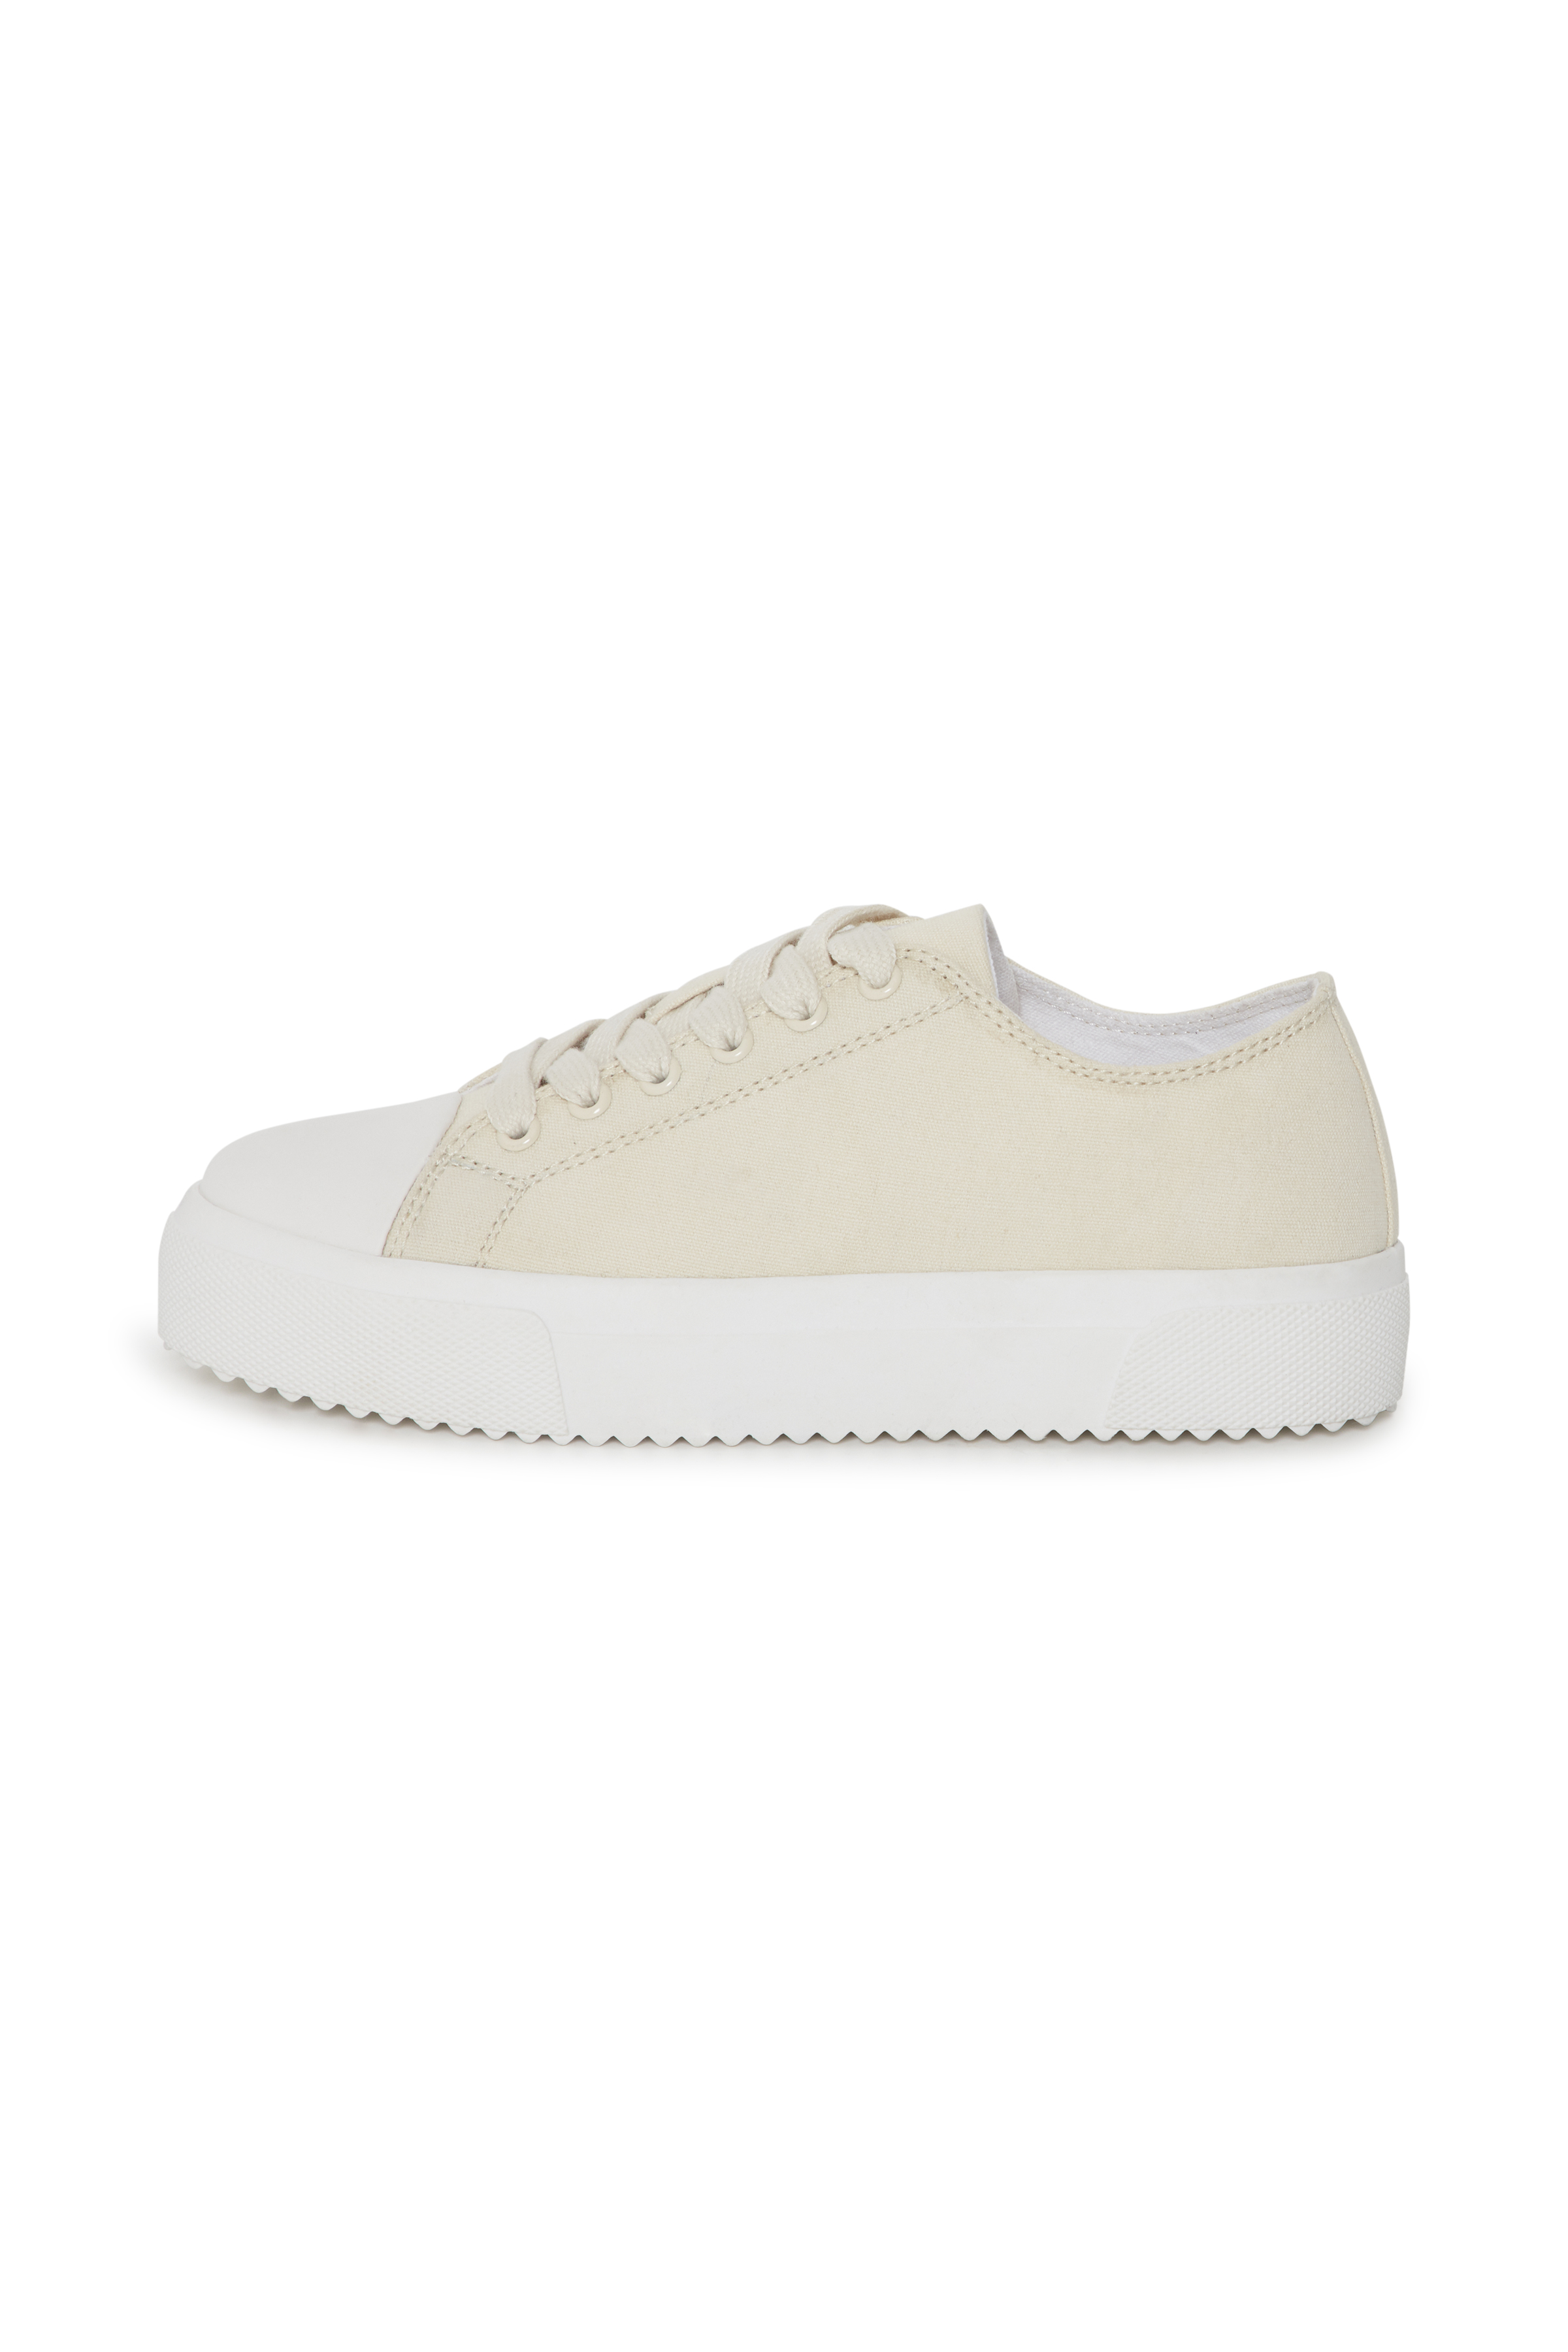 Image of   Ichi - accessories Dame Sneakers - Lys sand